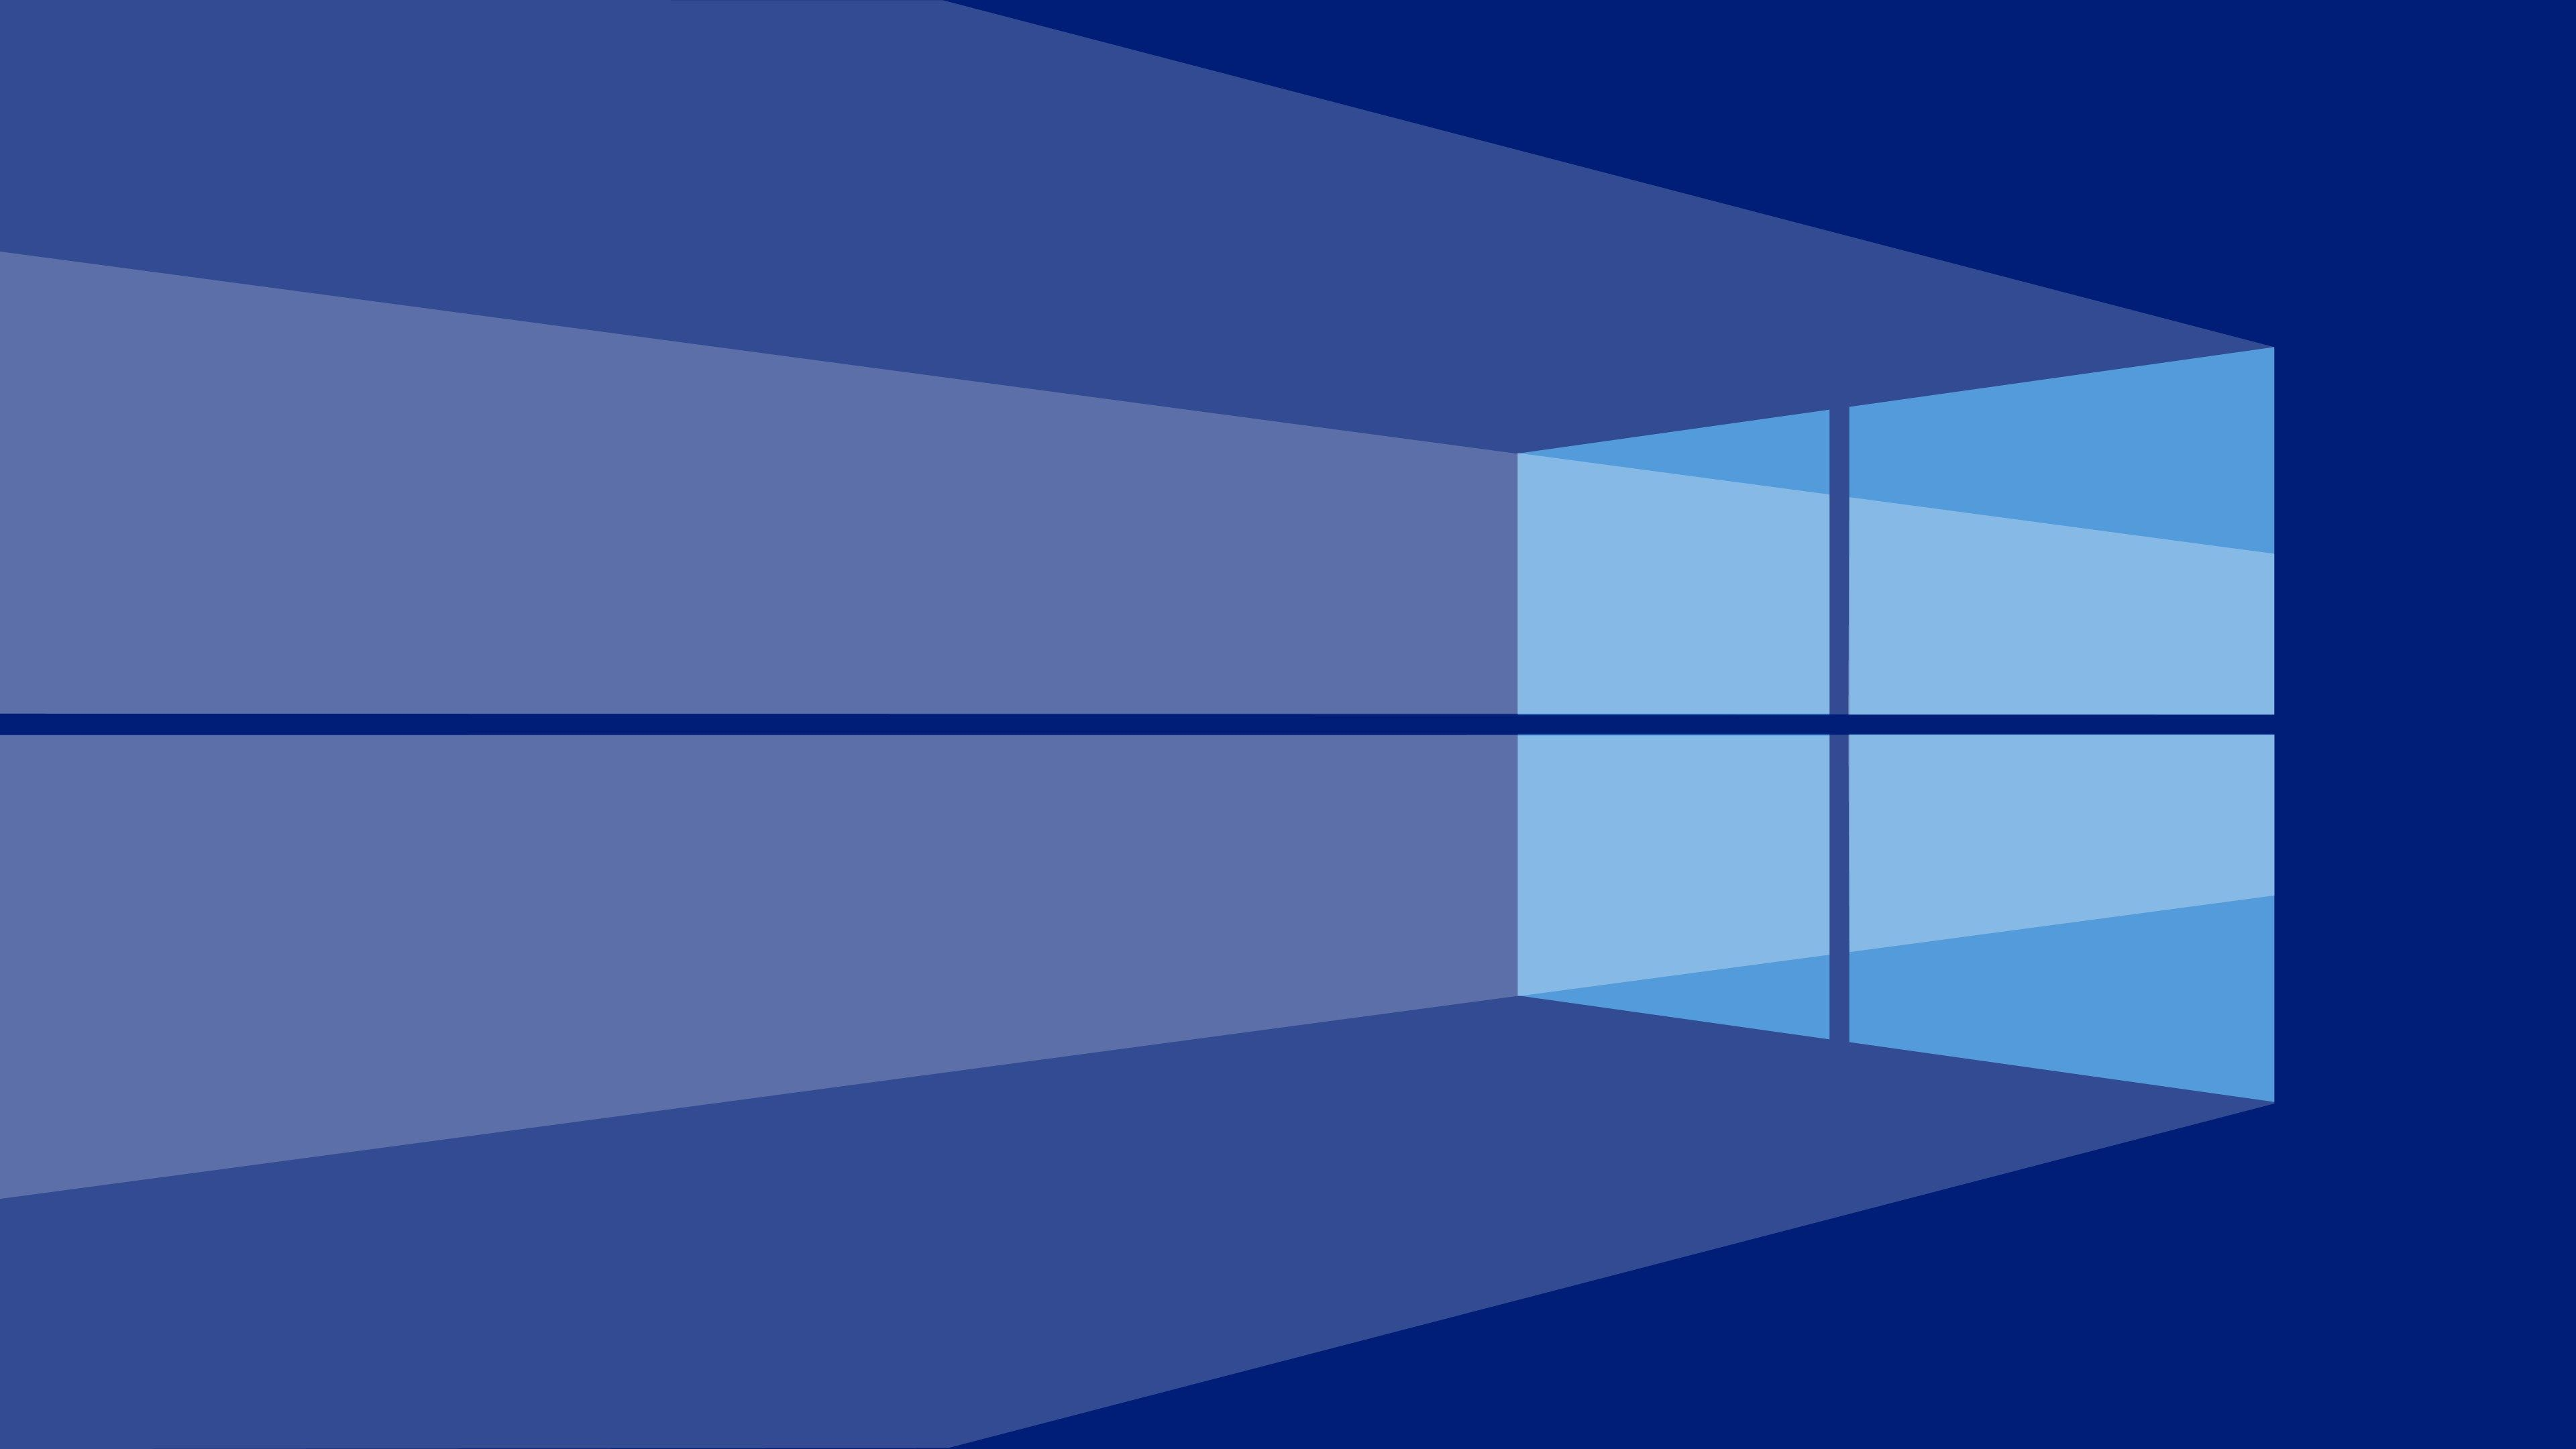 Windows 10 4k Wallpaper 3840x2160 Desktop Windows 10